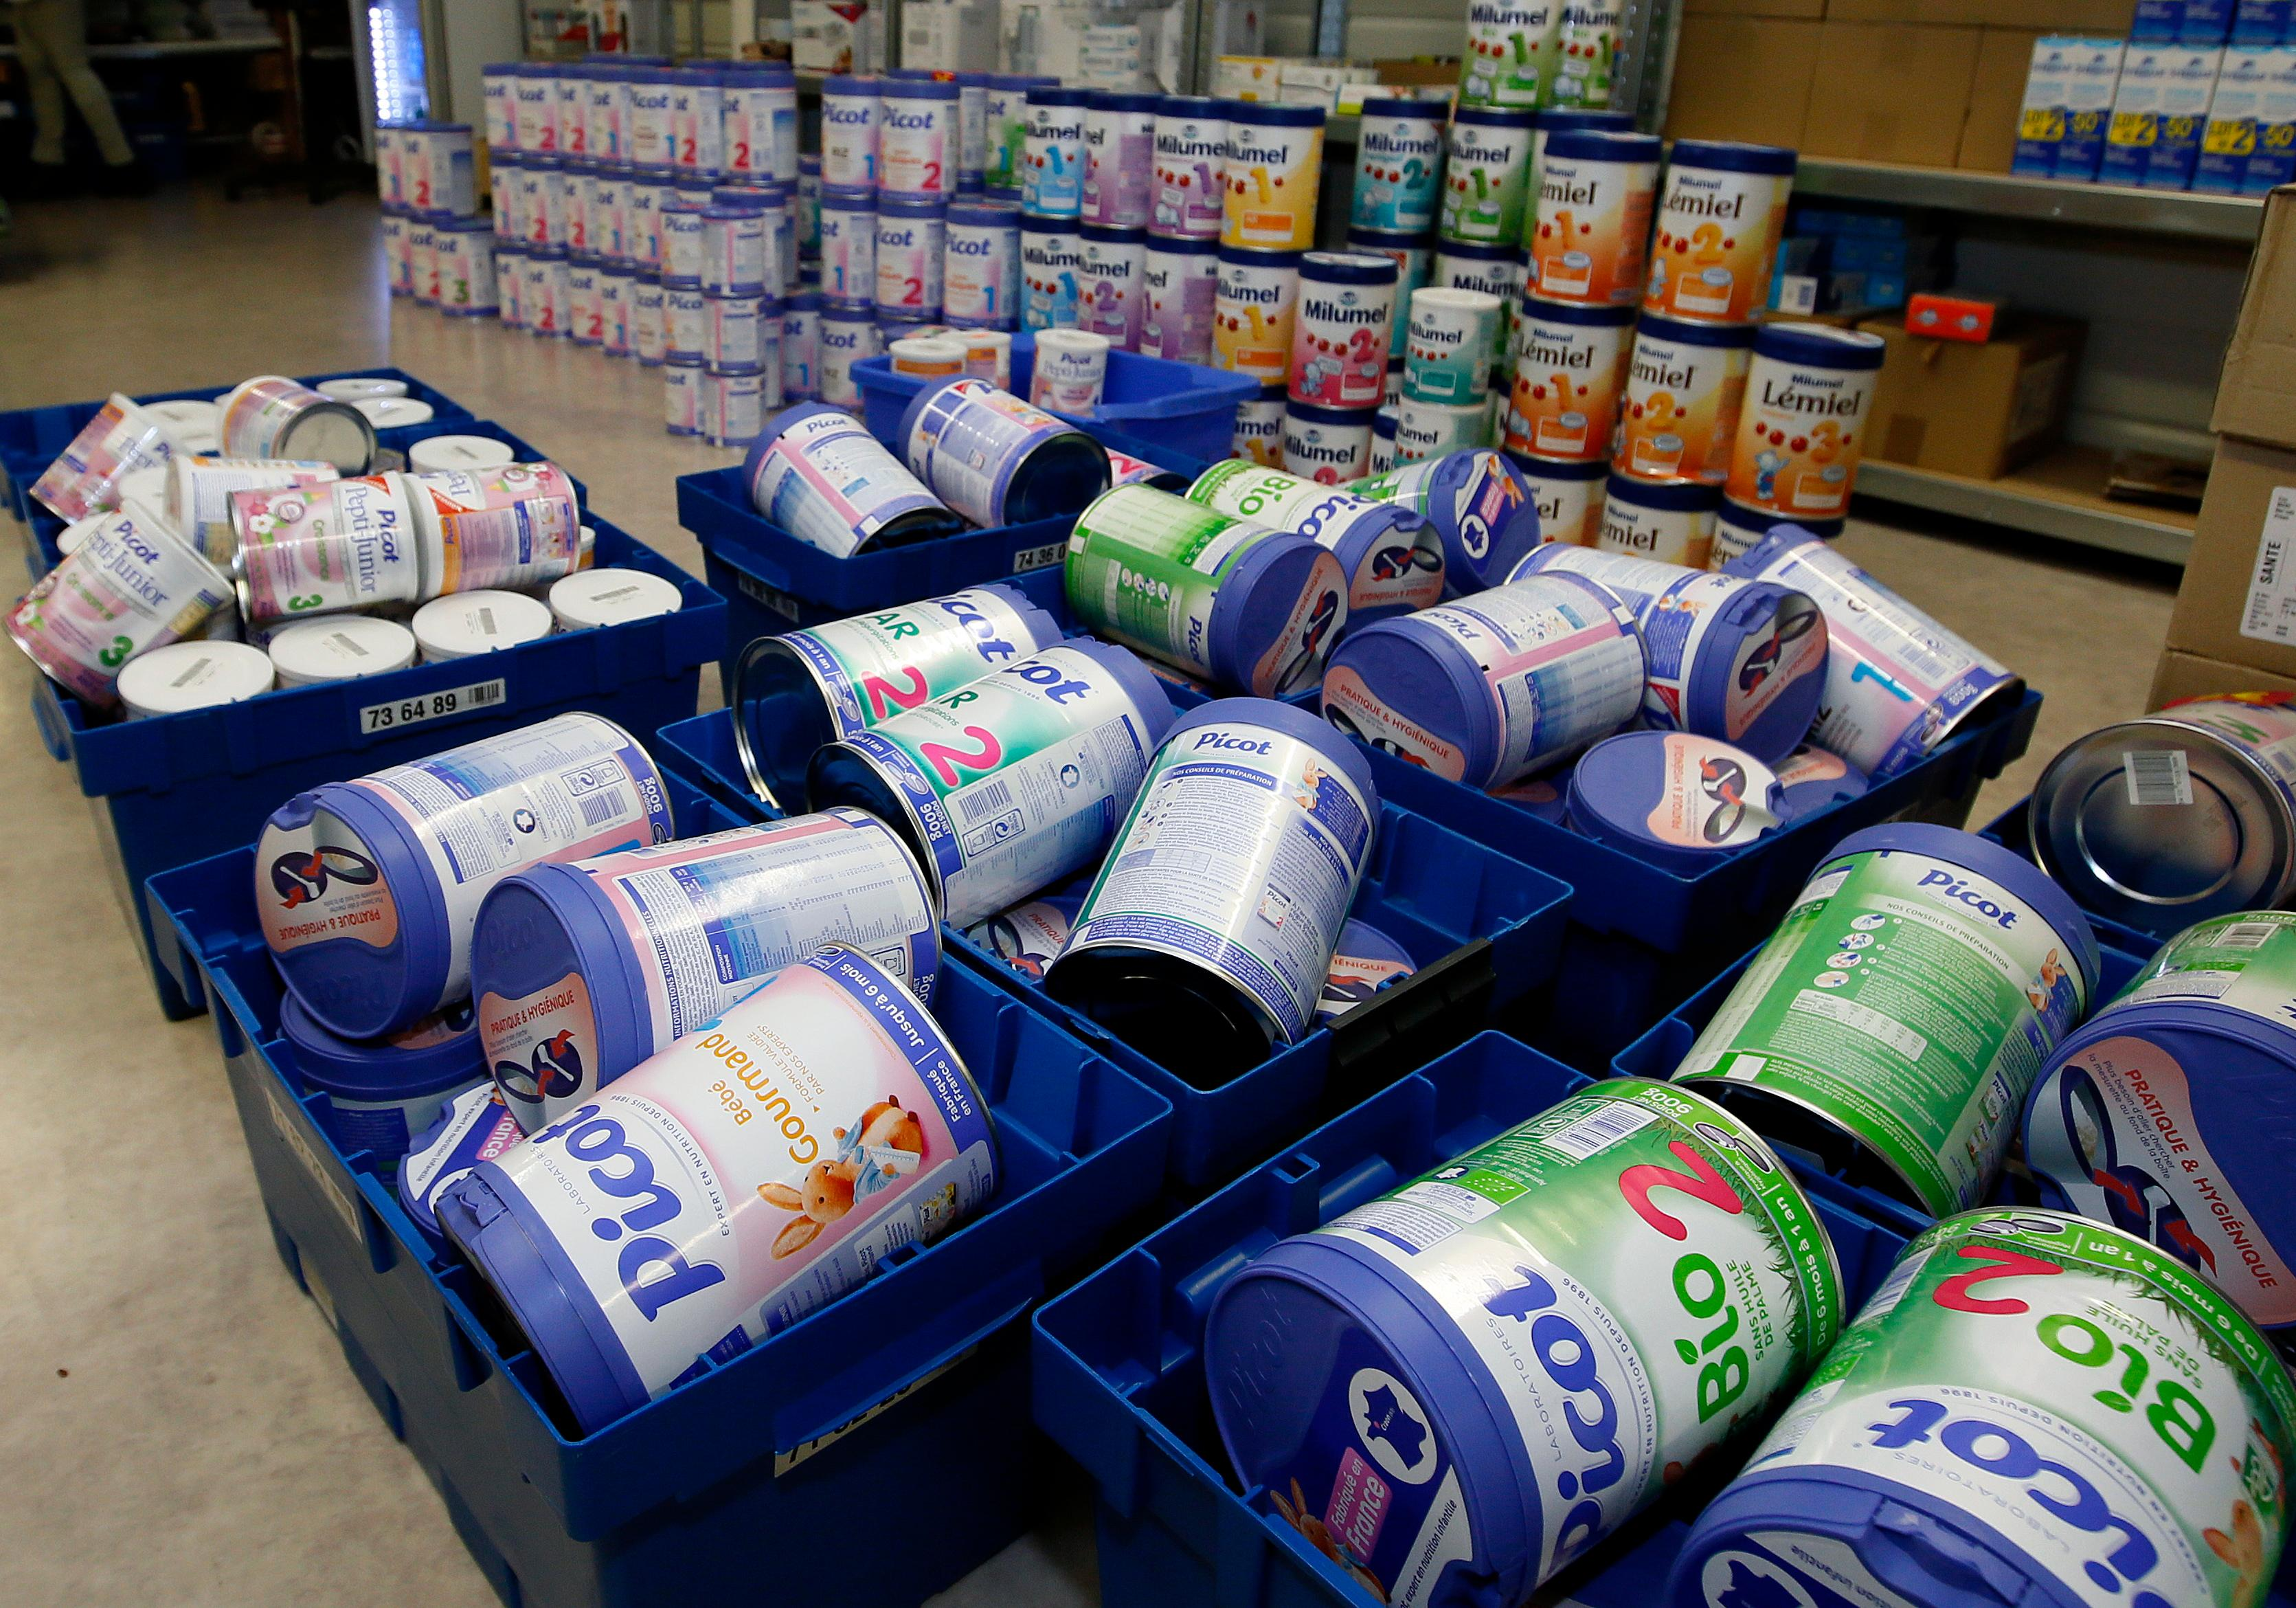 Removed baby milk boxes are pictured in a drugstore in Anglet, southwestern France, Monday, Dec.11, 2017. Baby milk maker Lactalis and French authorities have ordered a global recall of millions of products over fears of salmonella bacteria contamination. The French company, one of the largest dairy groups in the world, said it has been warned by health authorities in France that 26 infants have become sick since Dec. 1. (AP Photo/Bob Edme)